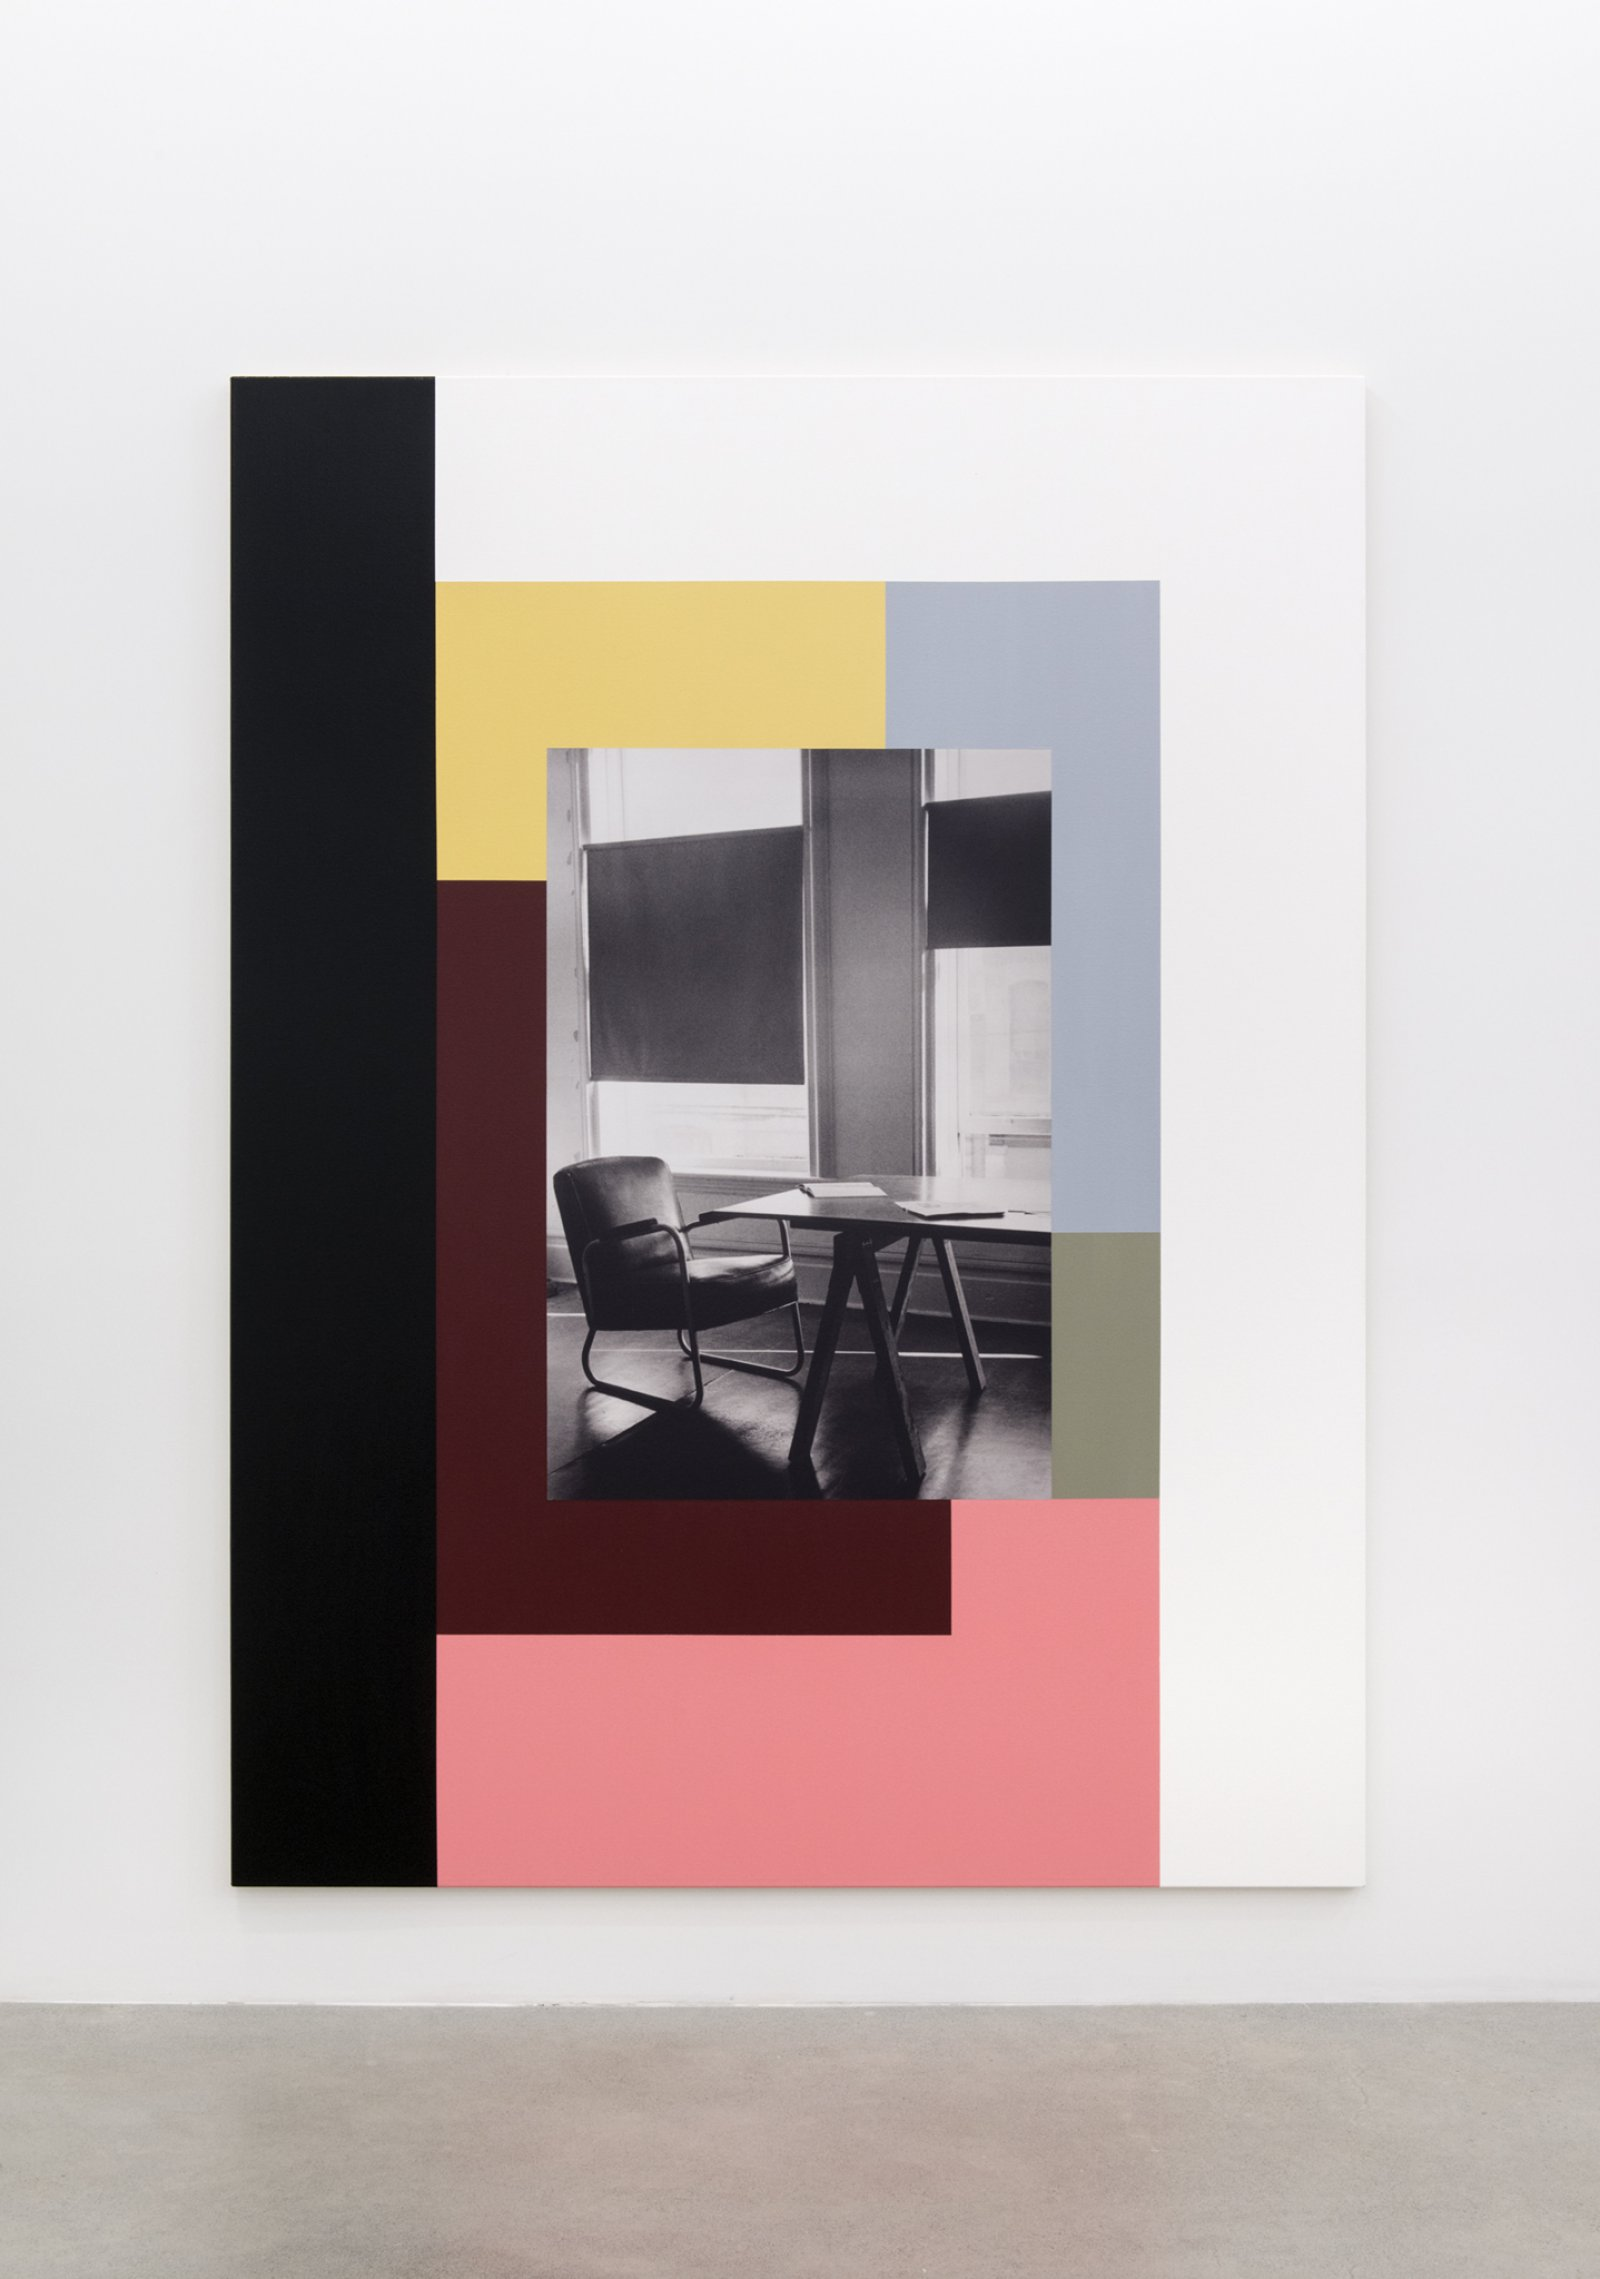 Ian Wallace, The Table (Image/Text), III, 1979–2013, photolaminate and acrylic on canvas, 96 x 72 in. (244 x 183 cm)